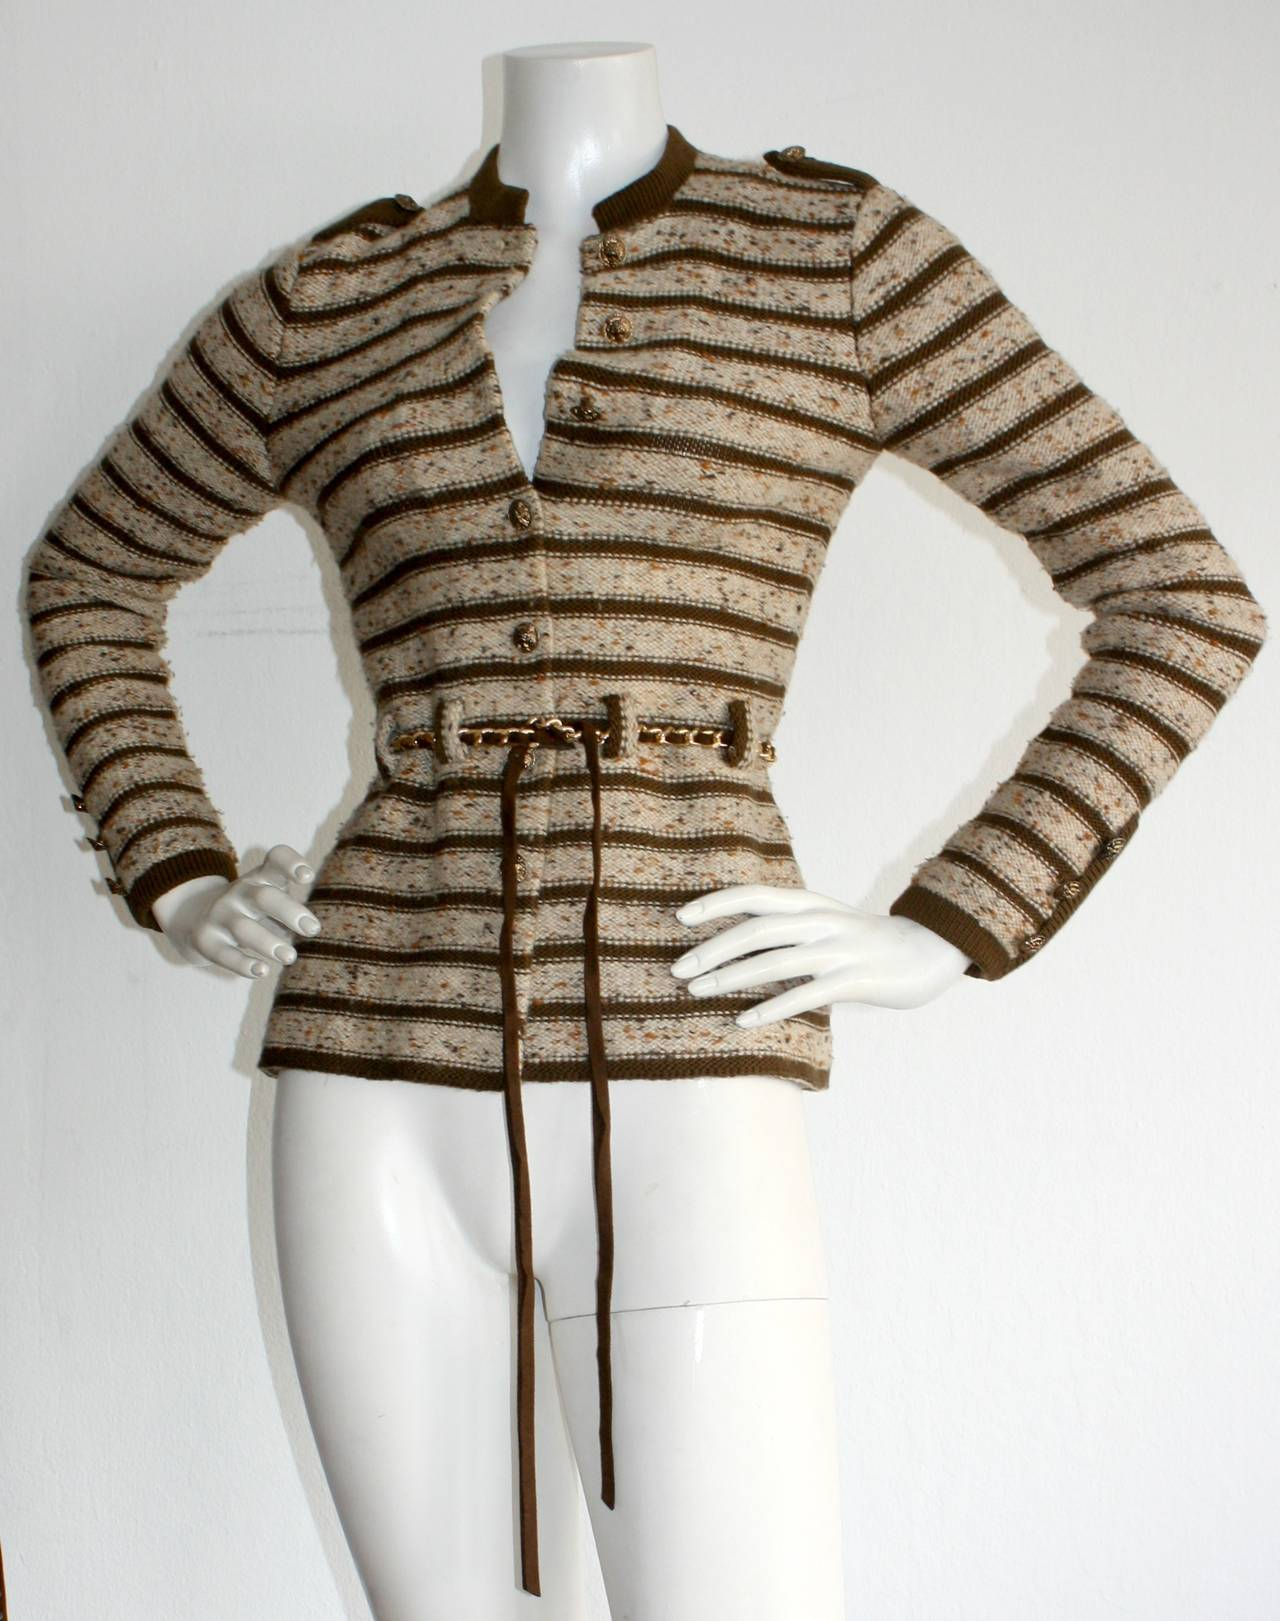 Brown Chic Vintage Adolfo Saks 5th Ave. Military Cardigan Sweater w/ Chain Belt For Sale